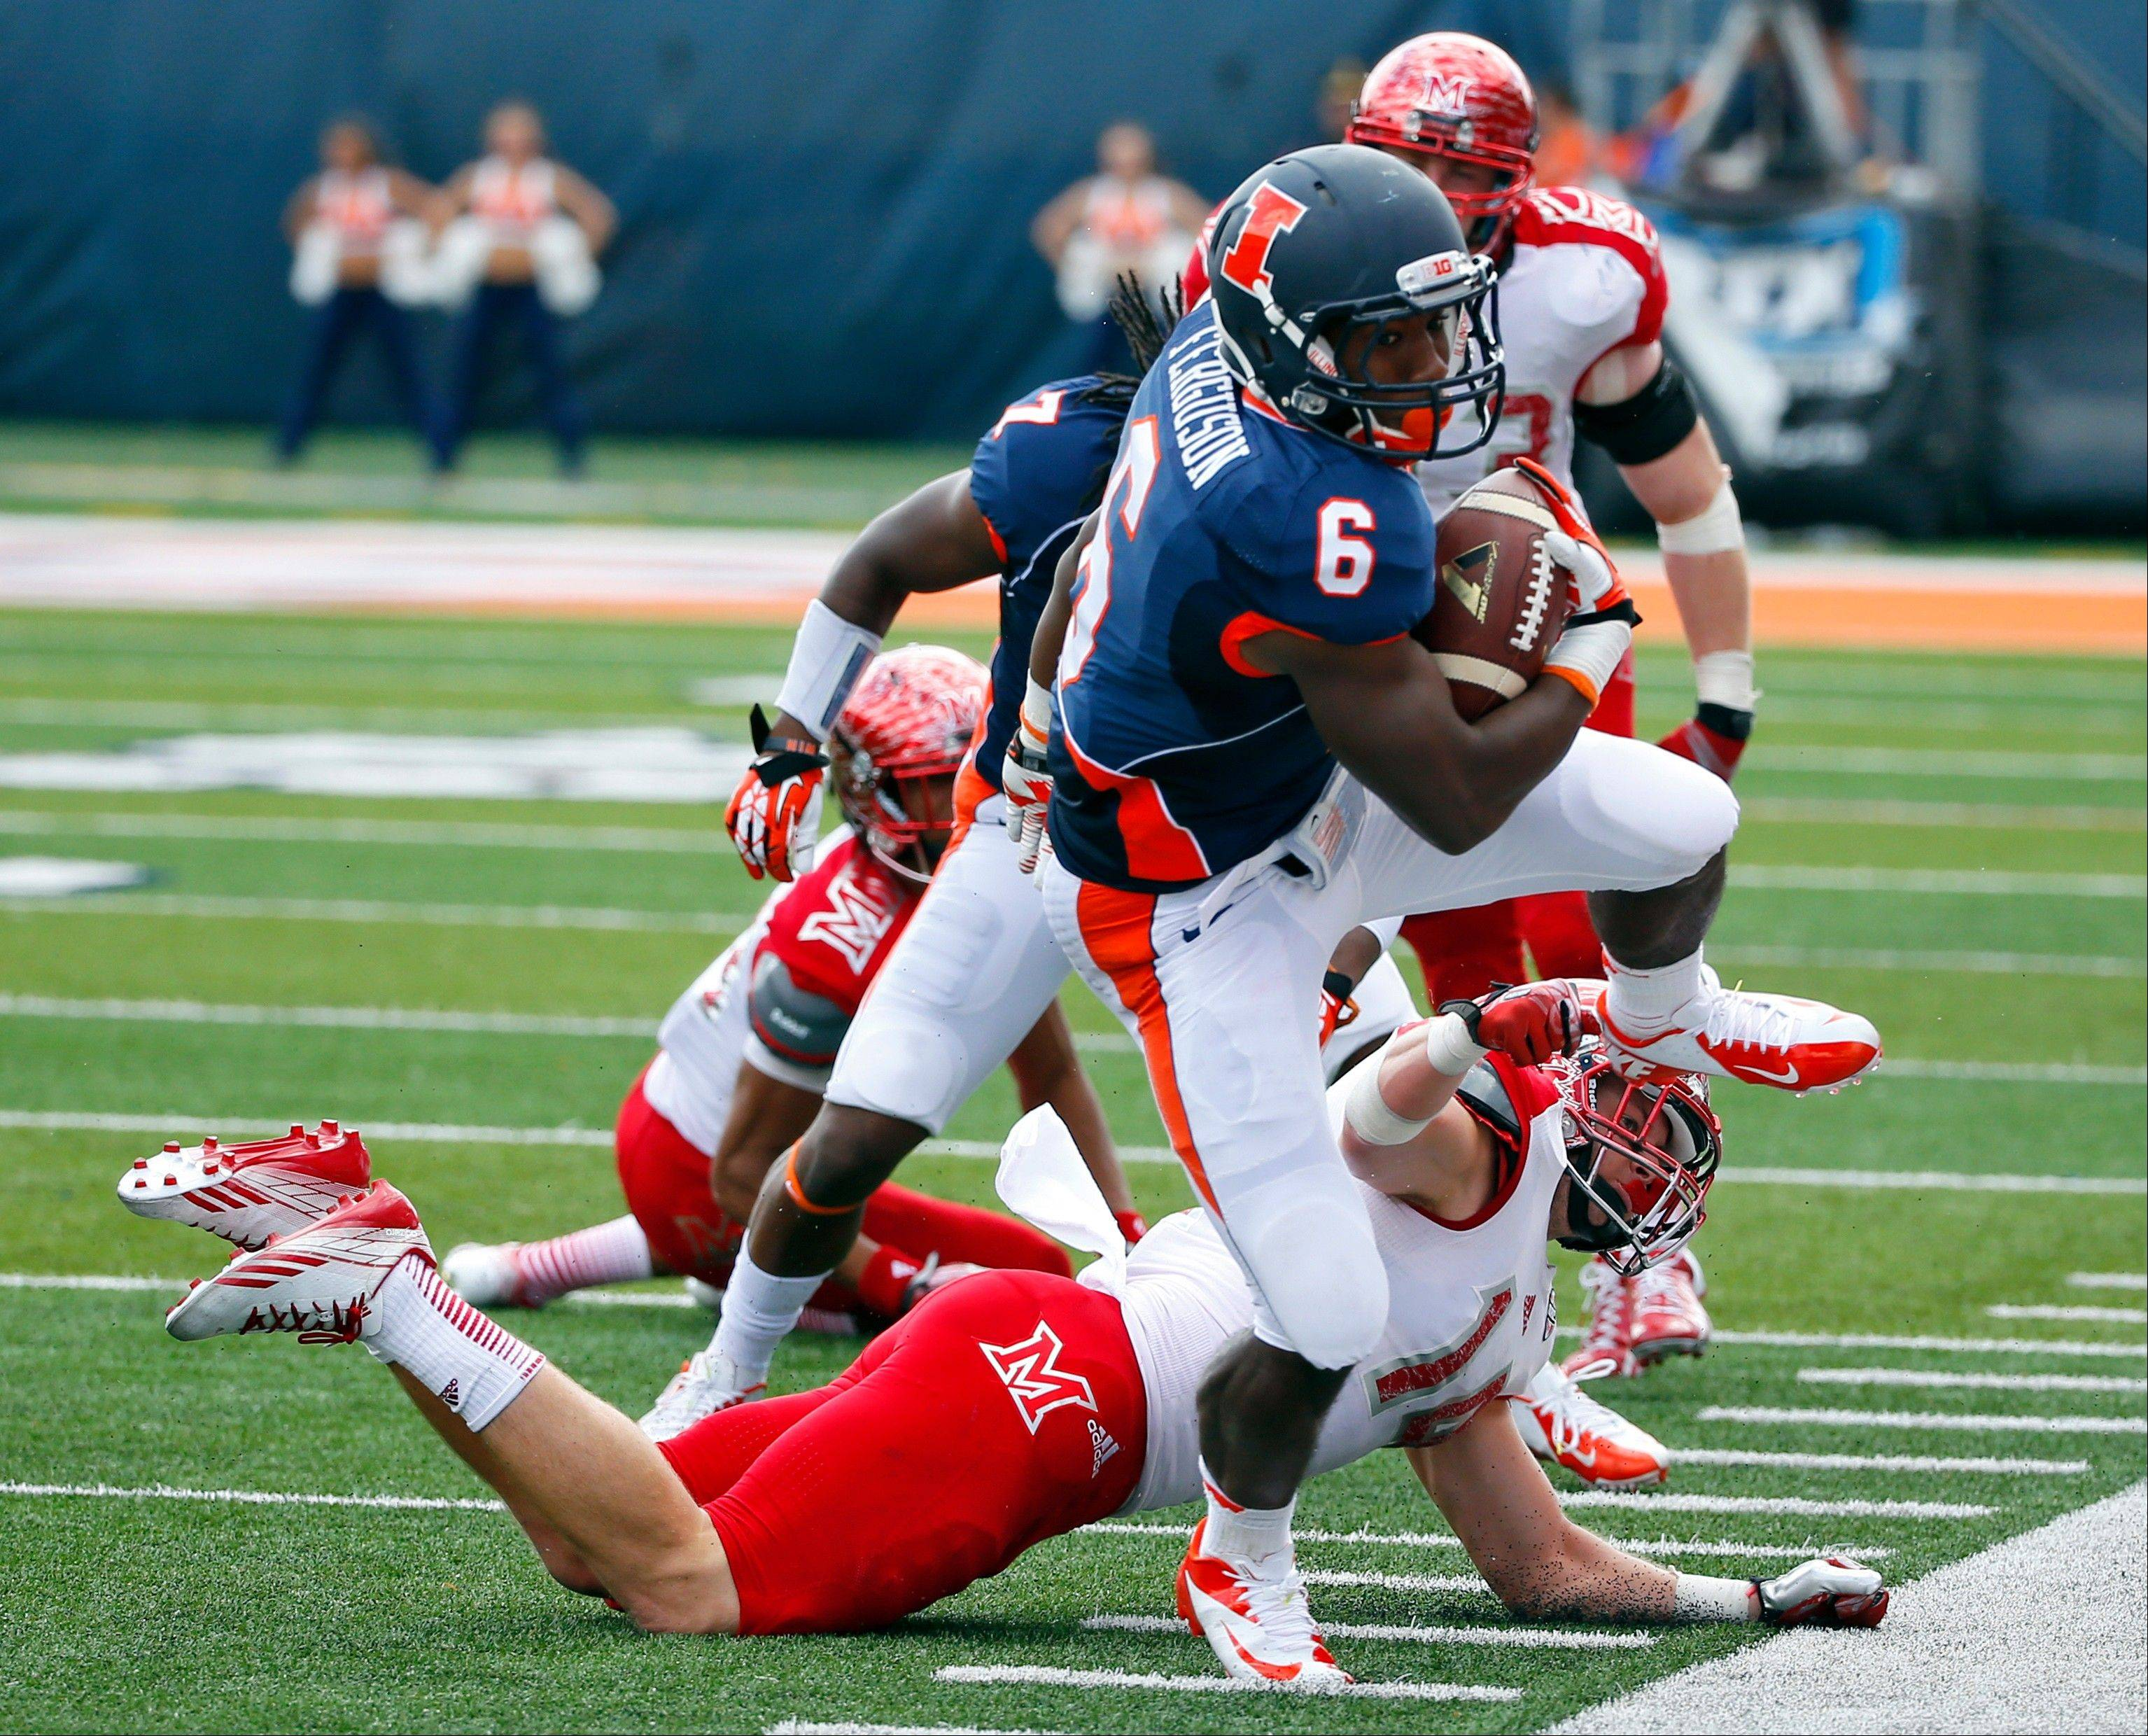 Illinois running back Josh Ferguson (6) is forced out of bounds by Miami (Ohio) defensive back Jay Mastin (14) during the first half of an NCAA college football game on Saturday, Sept. 28, 2013, at Memorial Stadium in Champaign, Ill.